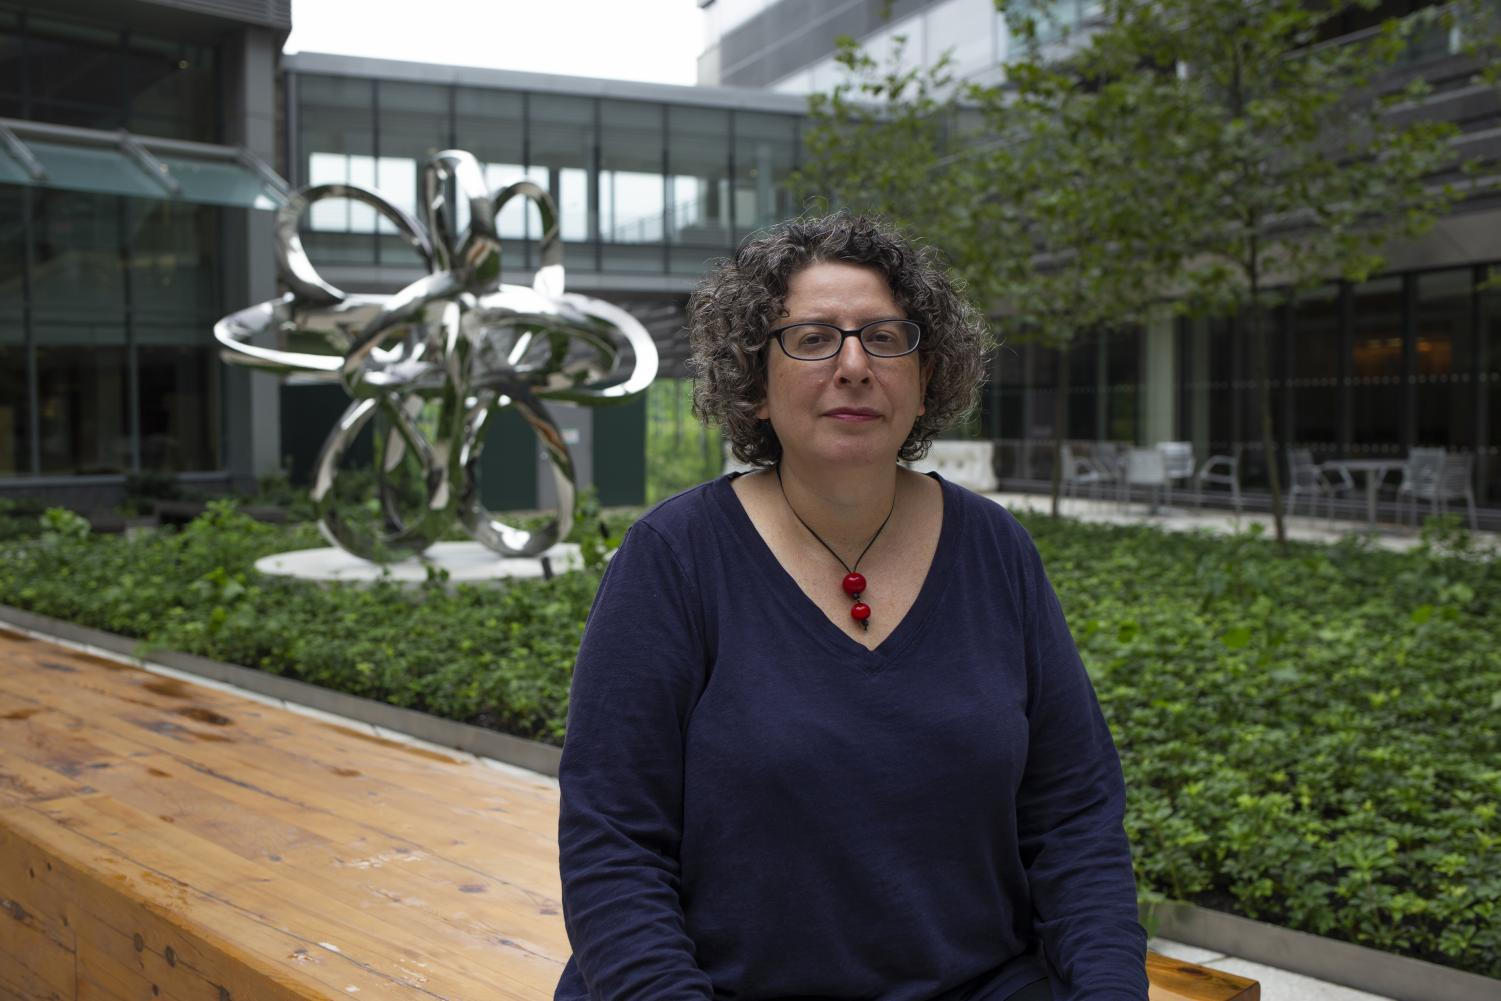 Dr. Anna Nolan in the courtyard of the new Science Building at NYU Langone.